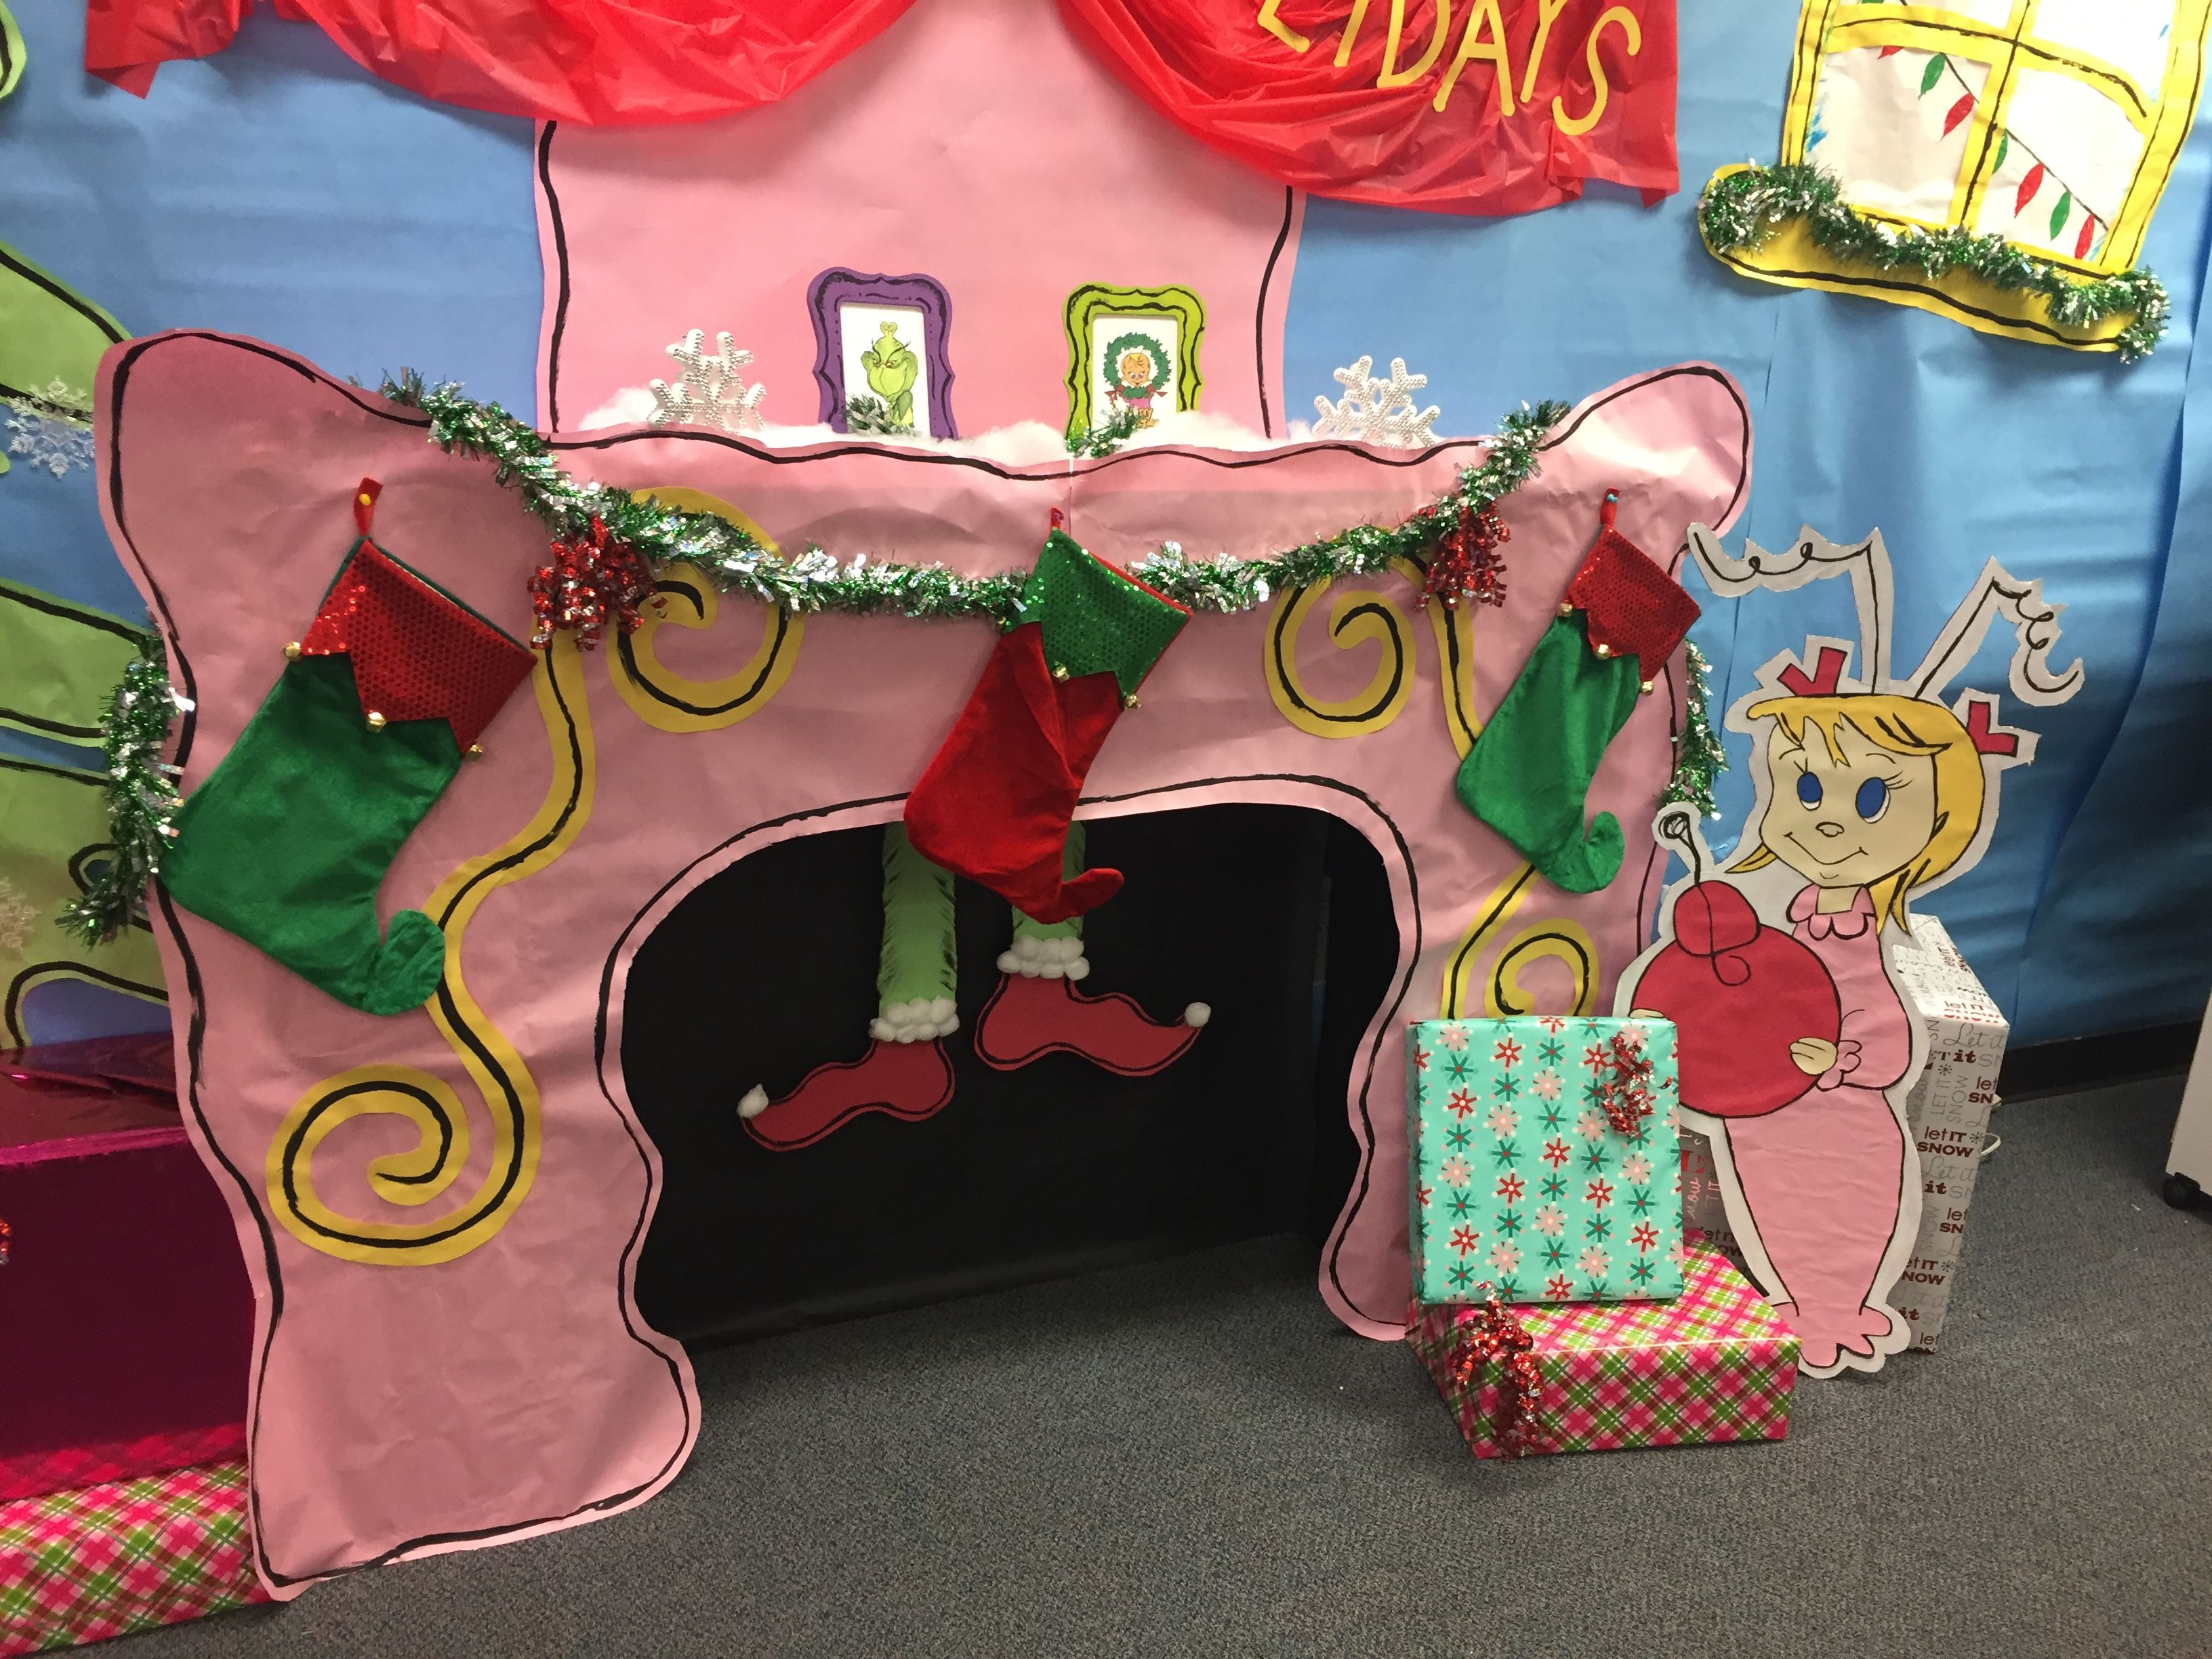 Classroom Decoration Ideas For Xmas ~ The grinch who stole christmas party decorations for